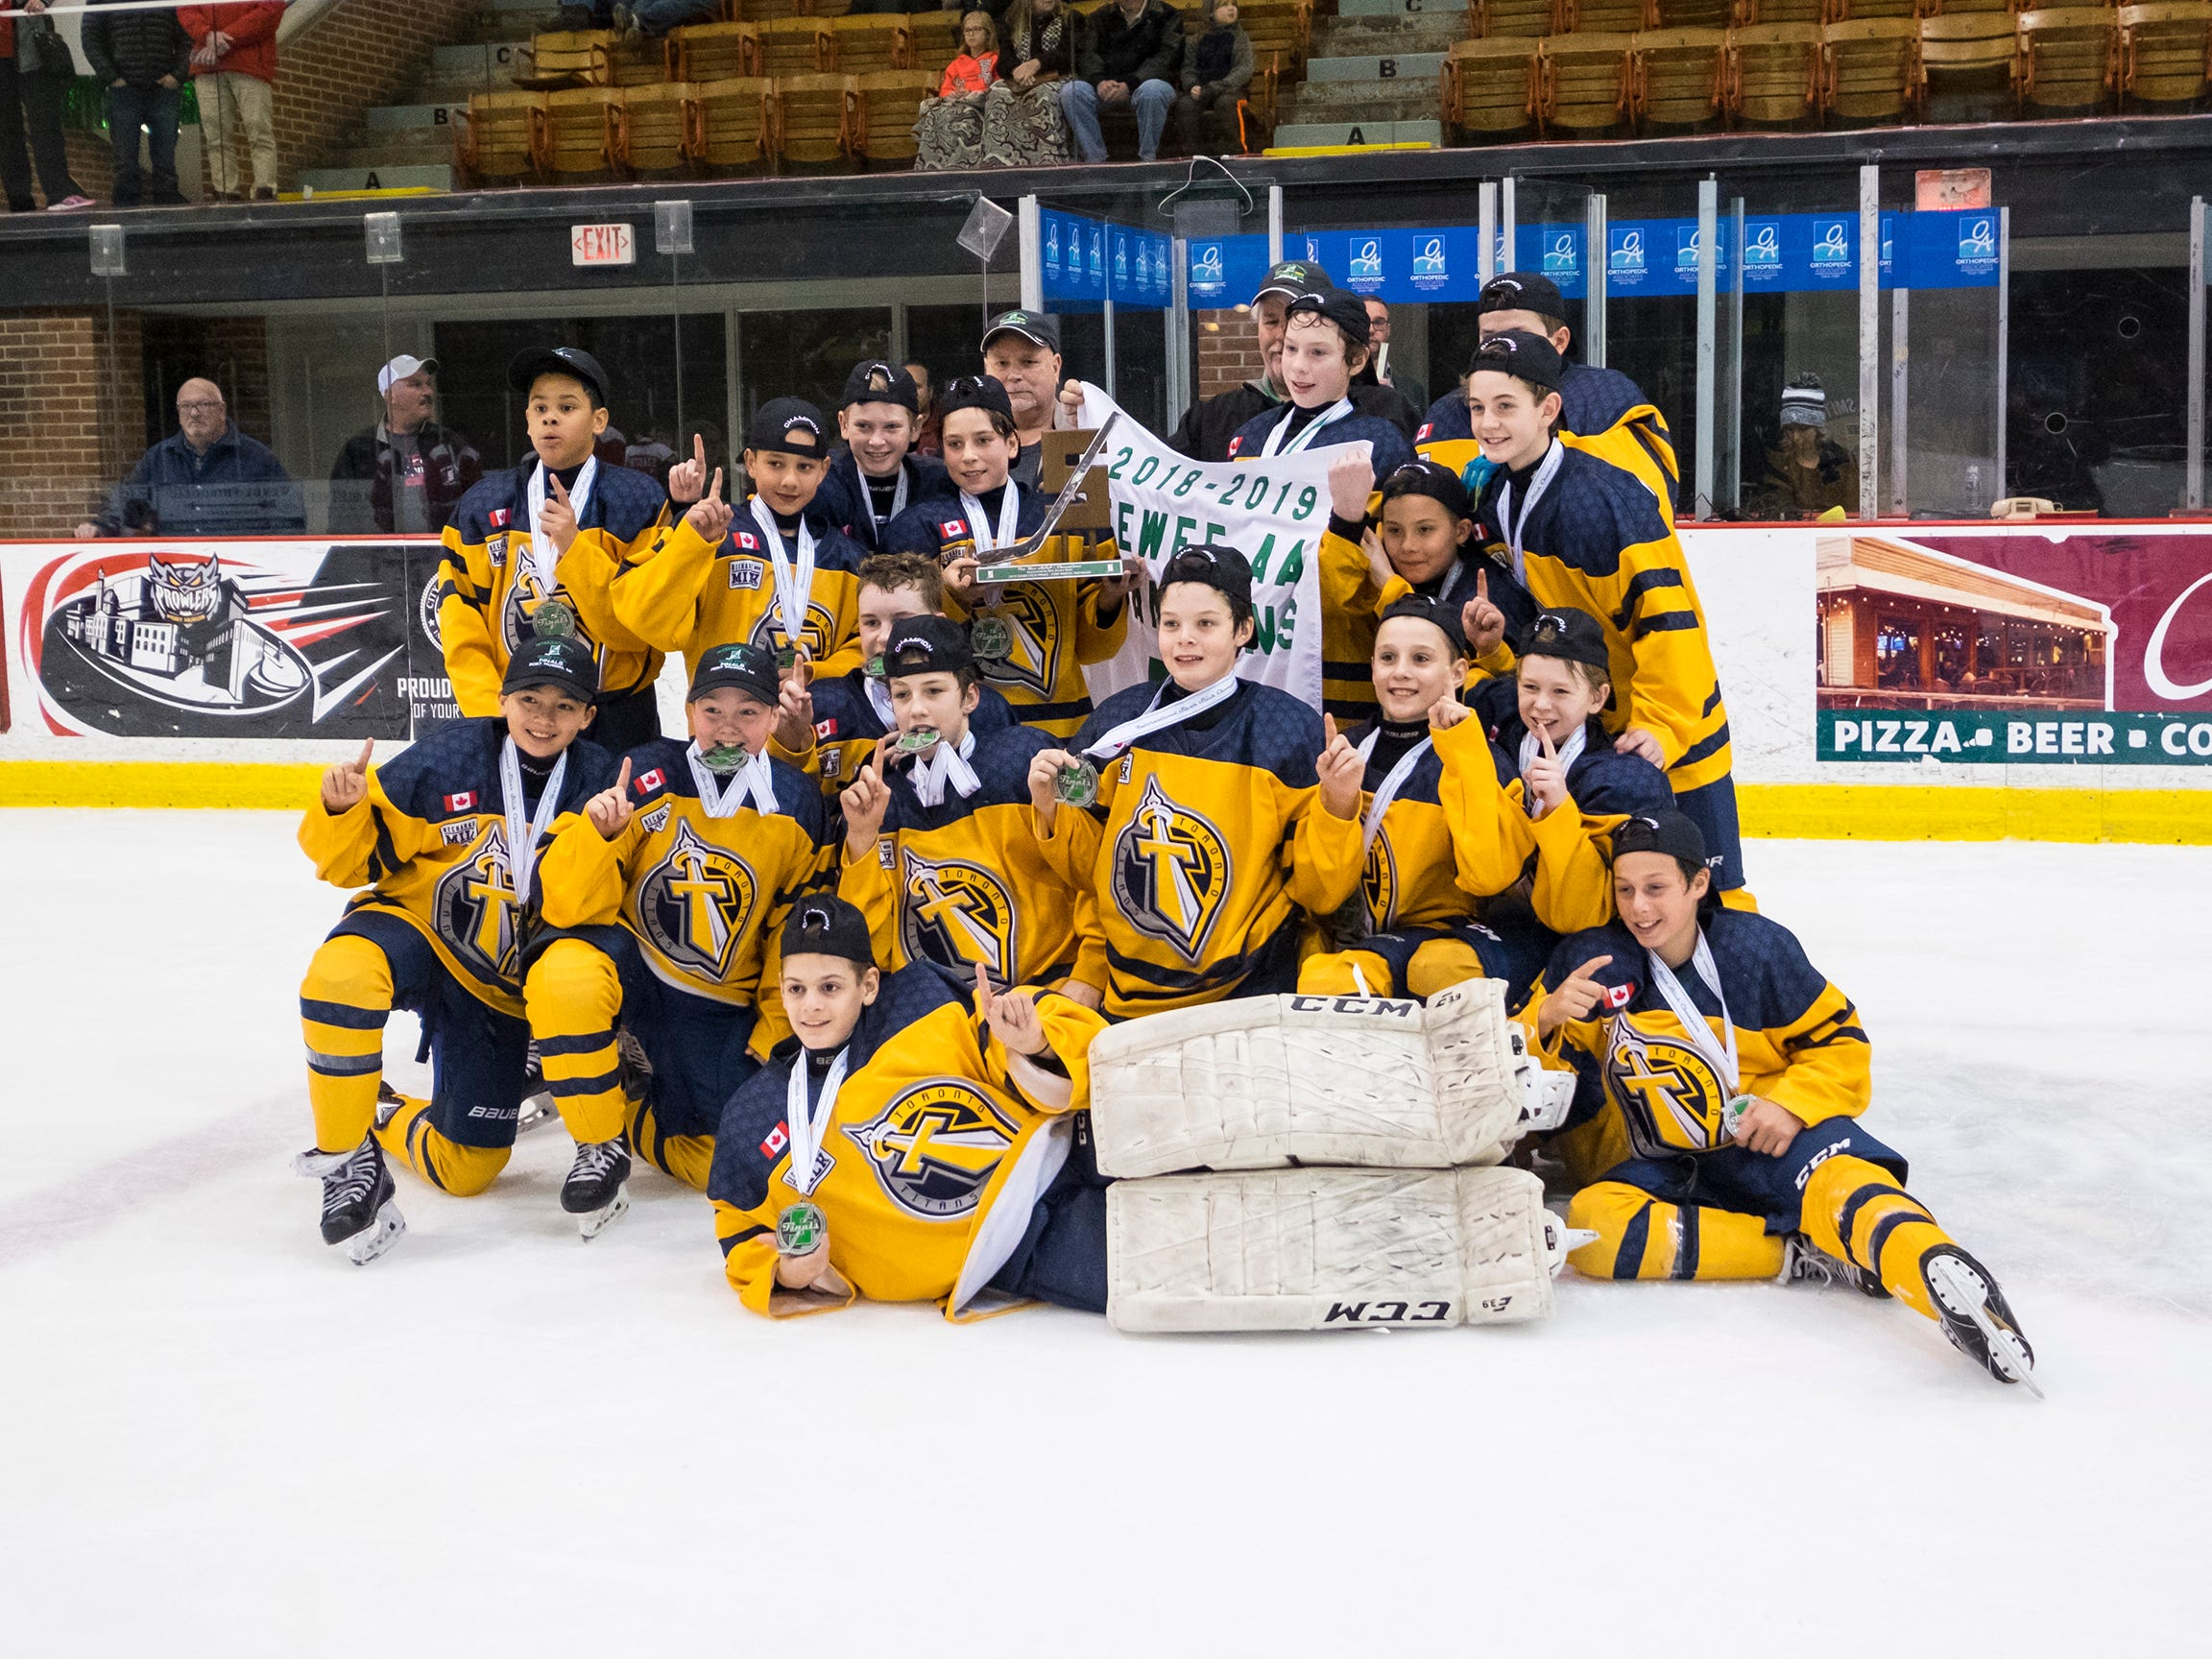 The Toronto Titans celebrate a 5-4 win in double overtime against Chicago Fury in the Silver Stick Finals PAAA Championship match Sunday, Jan. 6, 2019 at McMorran Arena.